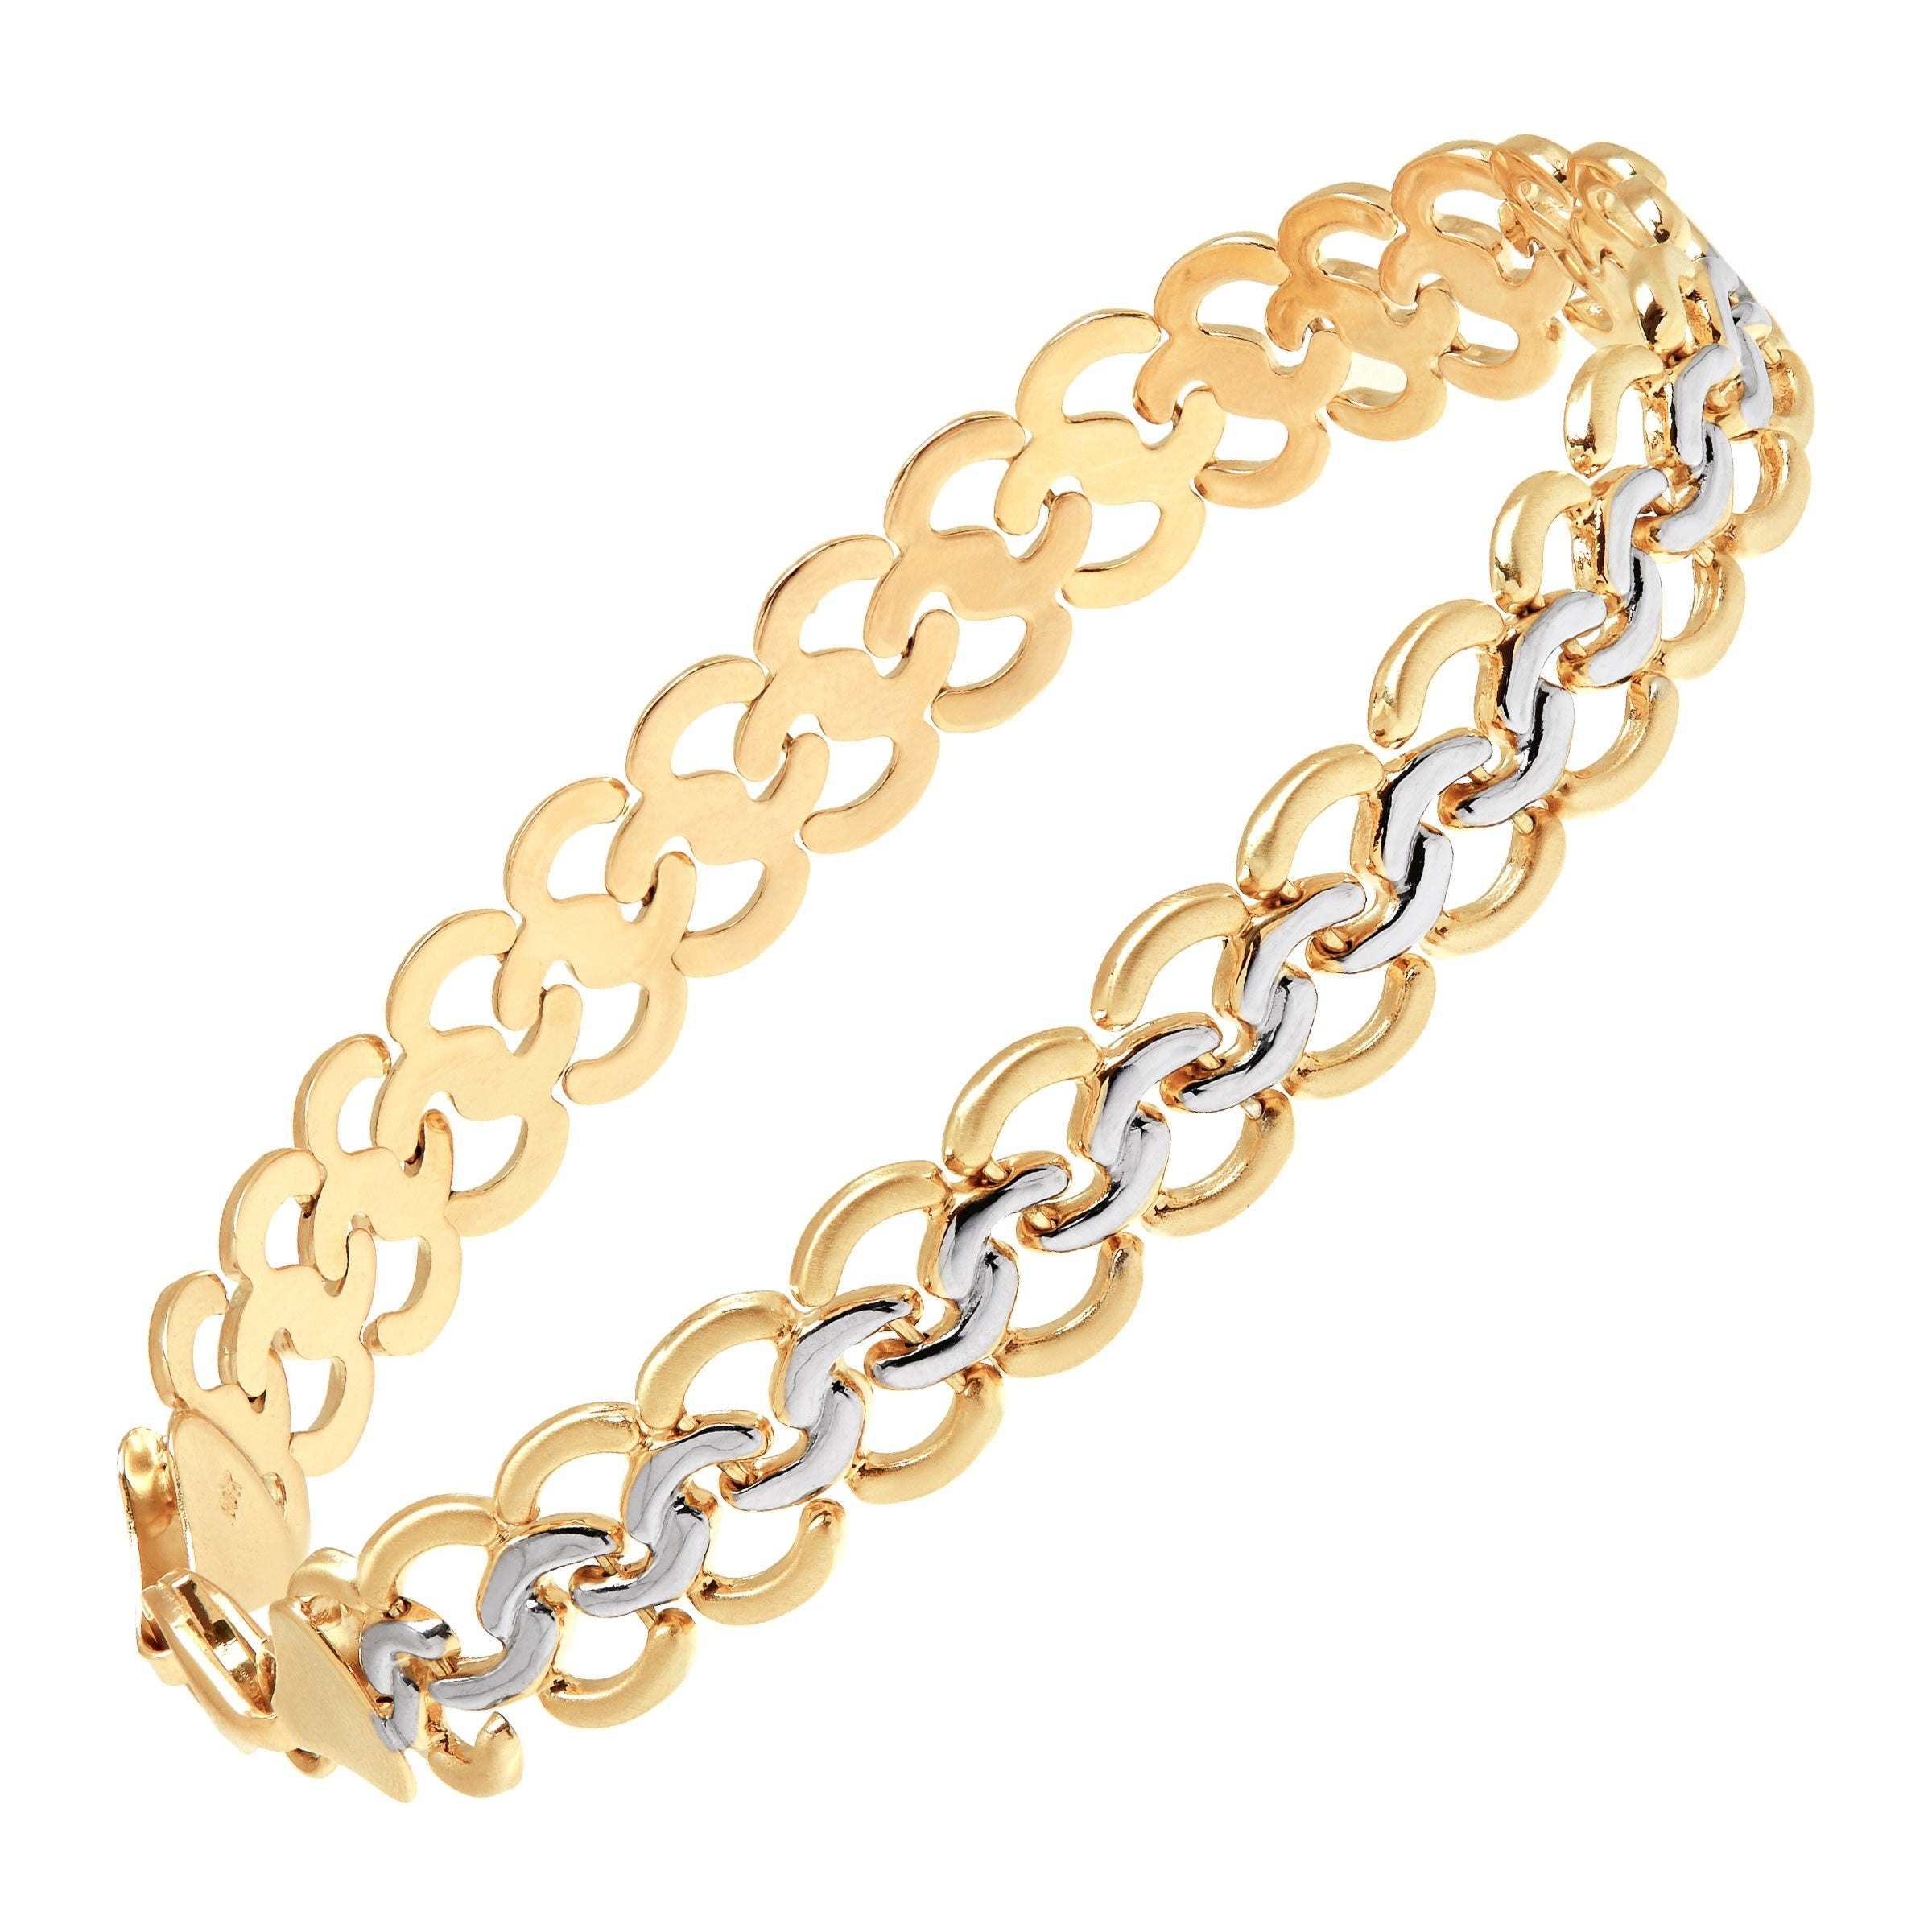 Fine Anklets 2019 New Style 14k Two Gold Abstract Fancy Link Design Ankle Bracelet 2.8 Grams Anklet Clearance Price